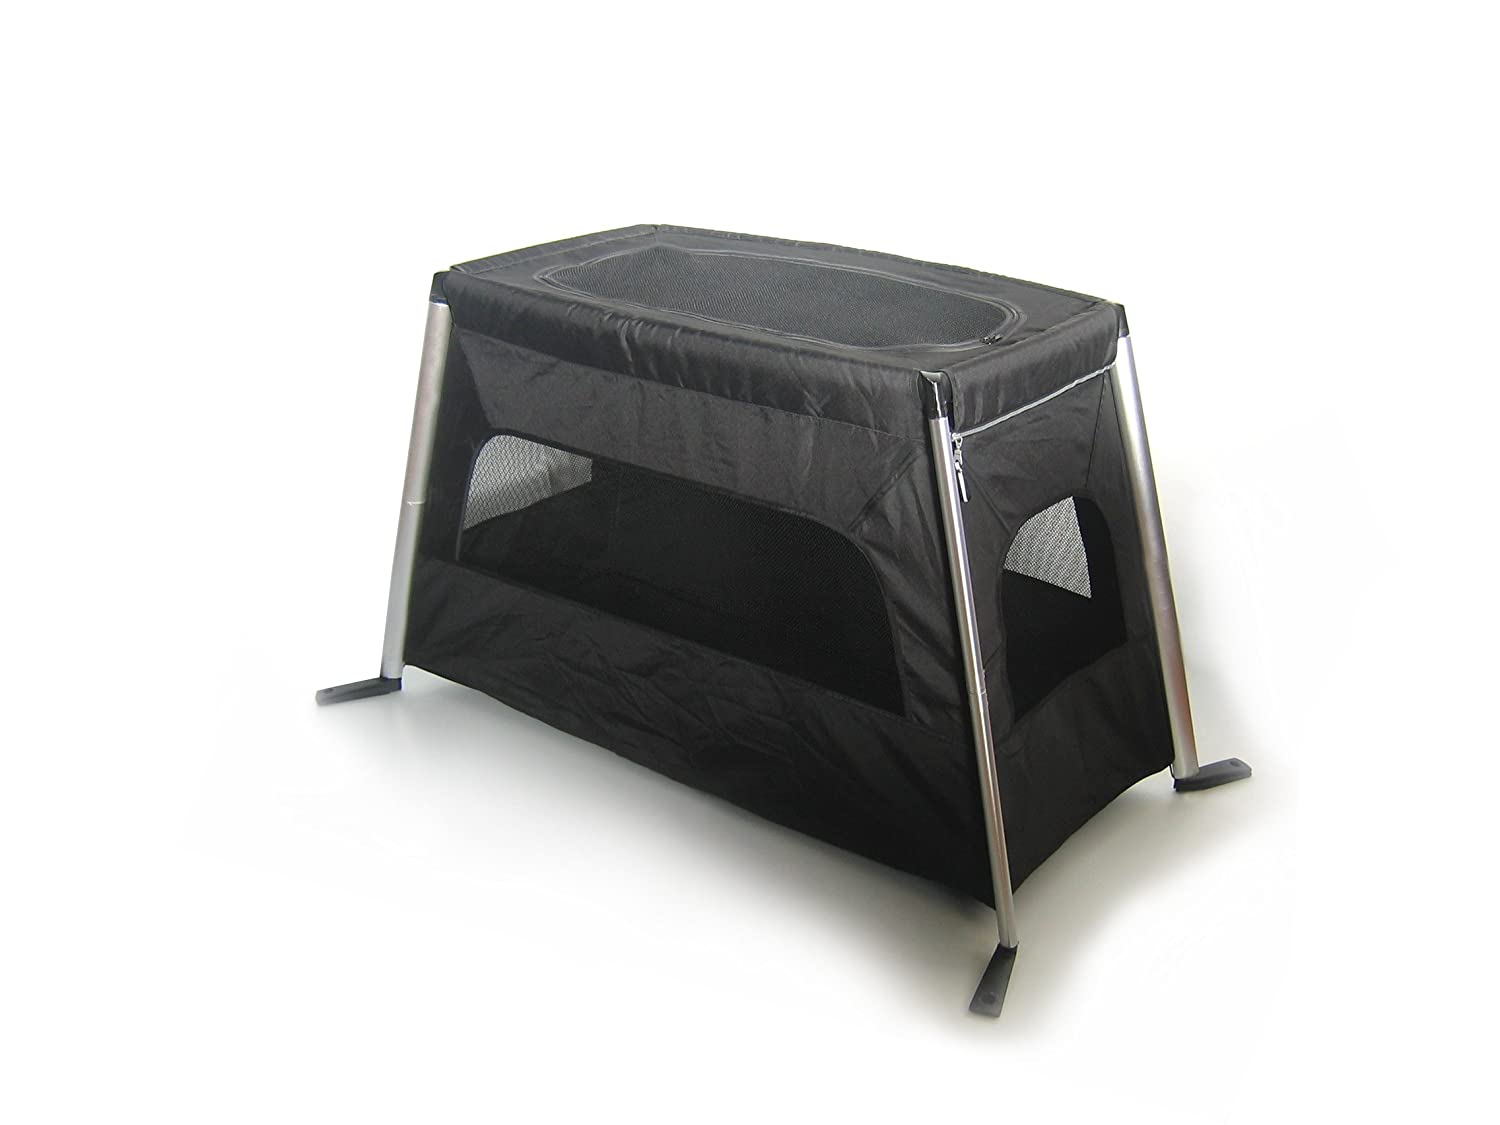 amazoncom traveller crib black by phil and teds travel crib baby